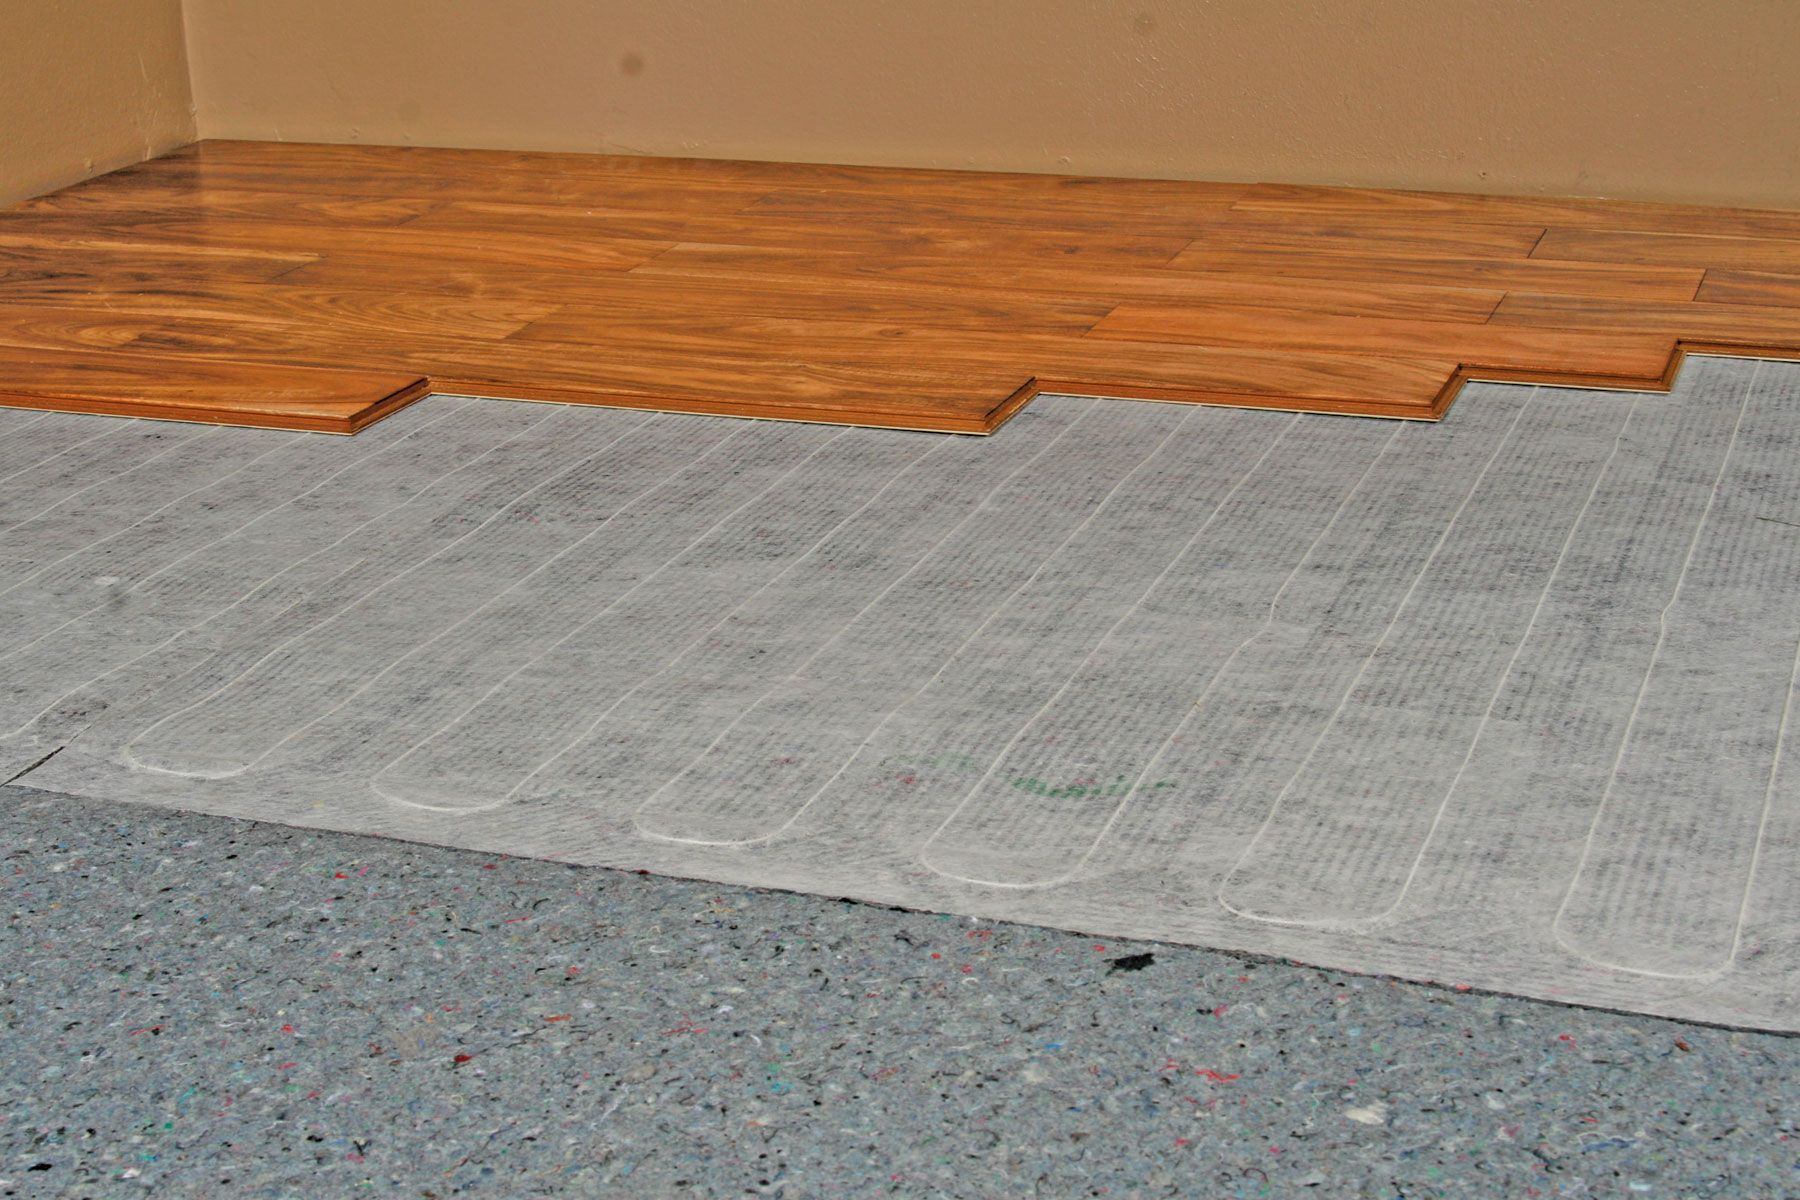 QuietWarmth Combines Acoustical And Insulating Technology With - Heating element for tile floor